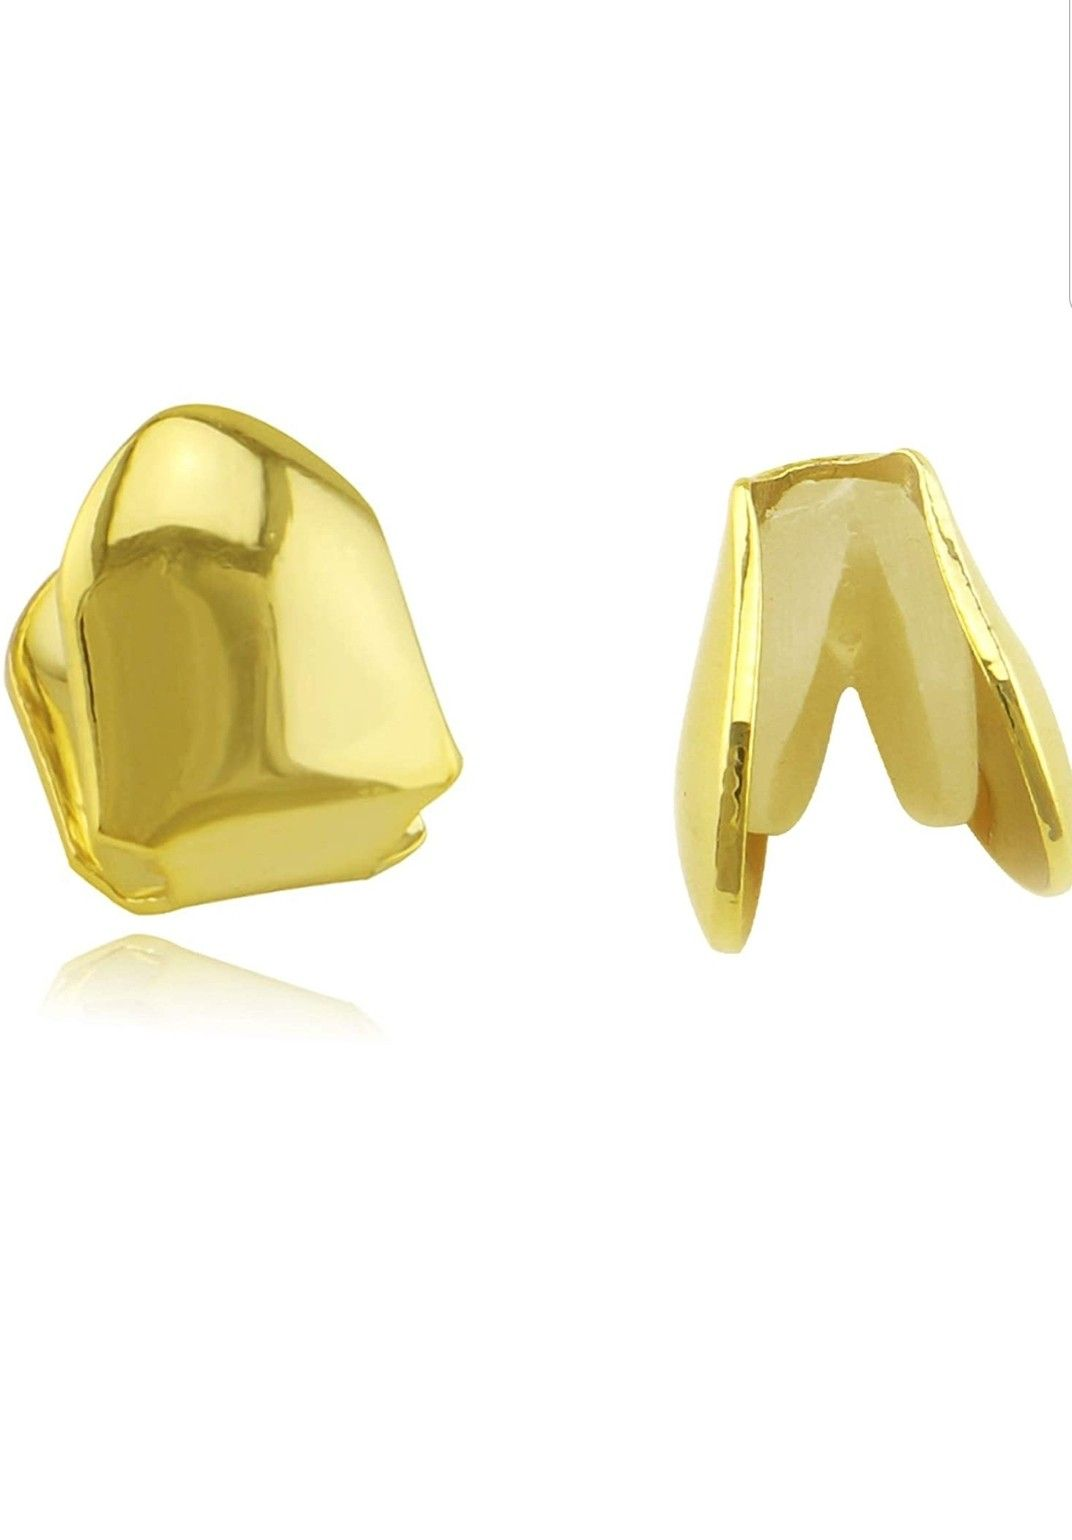 1 piece 14k plated gold Grillz single grill cap Hip hop to tooth